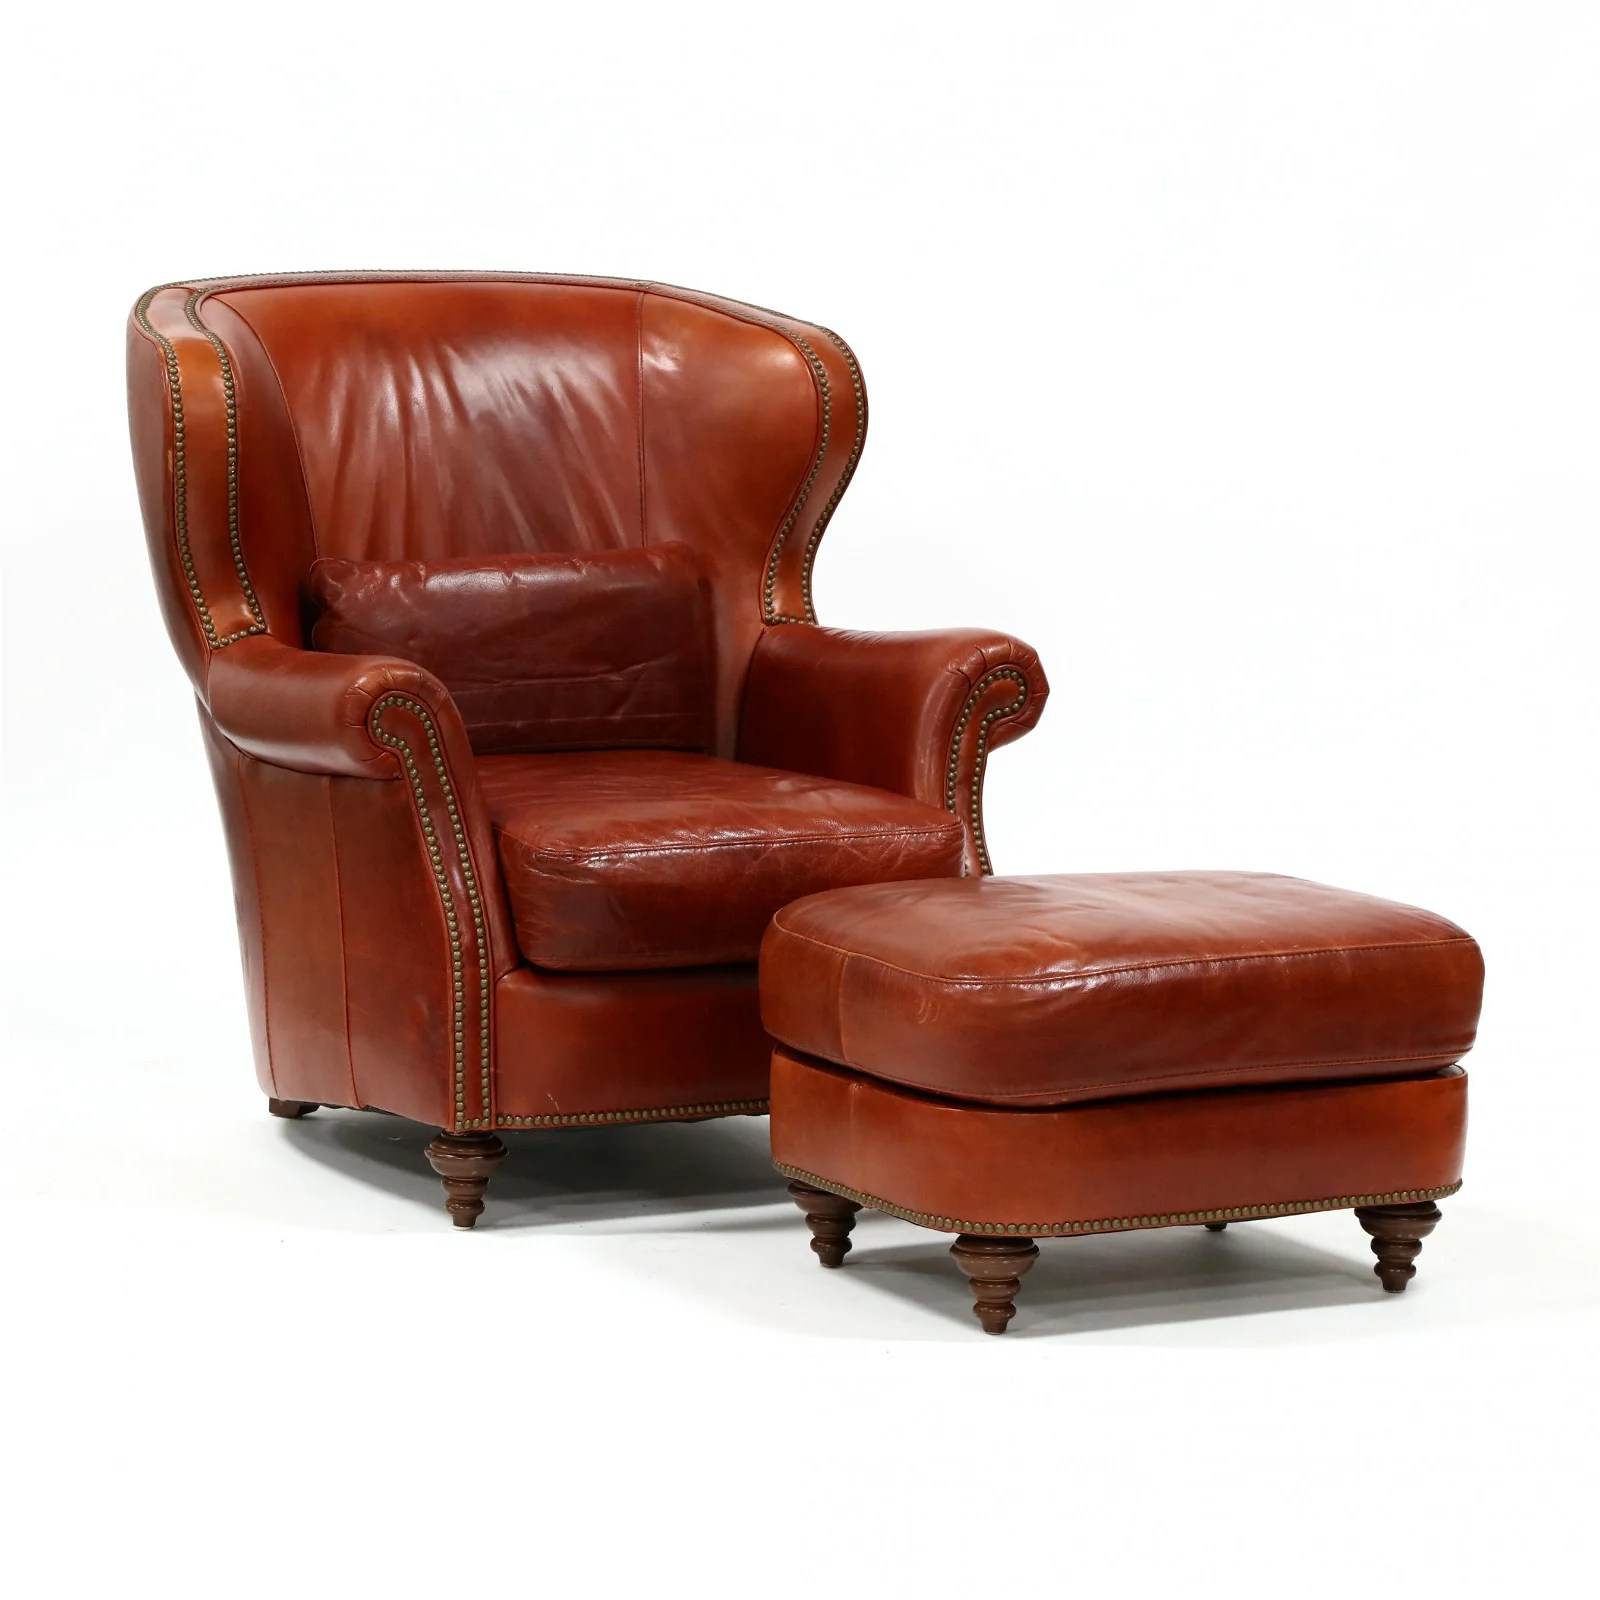 Bradington Young Leather Club Chair And Ottoman Nov 12 2020 Leland Little Auctions In Nc